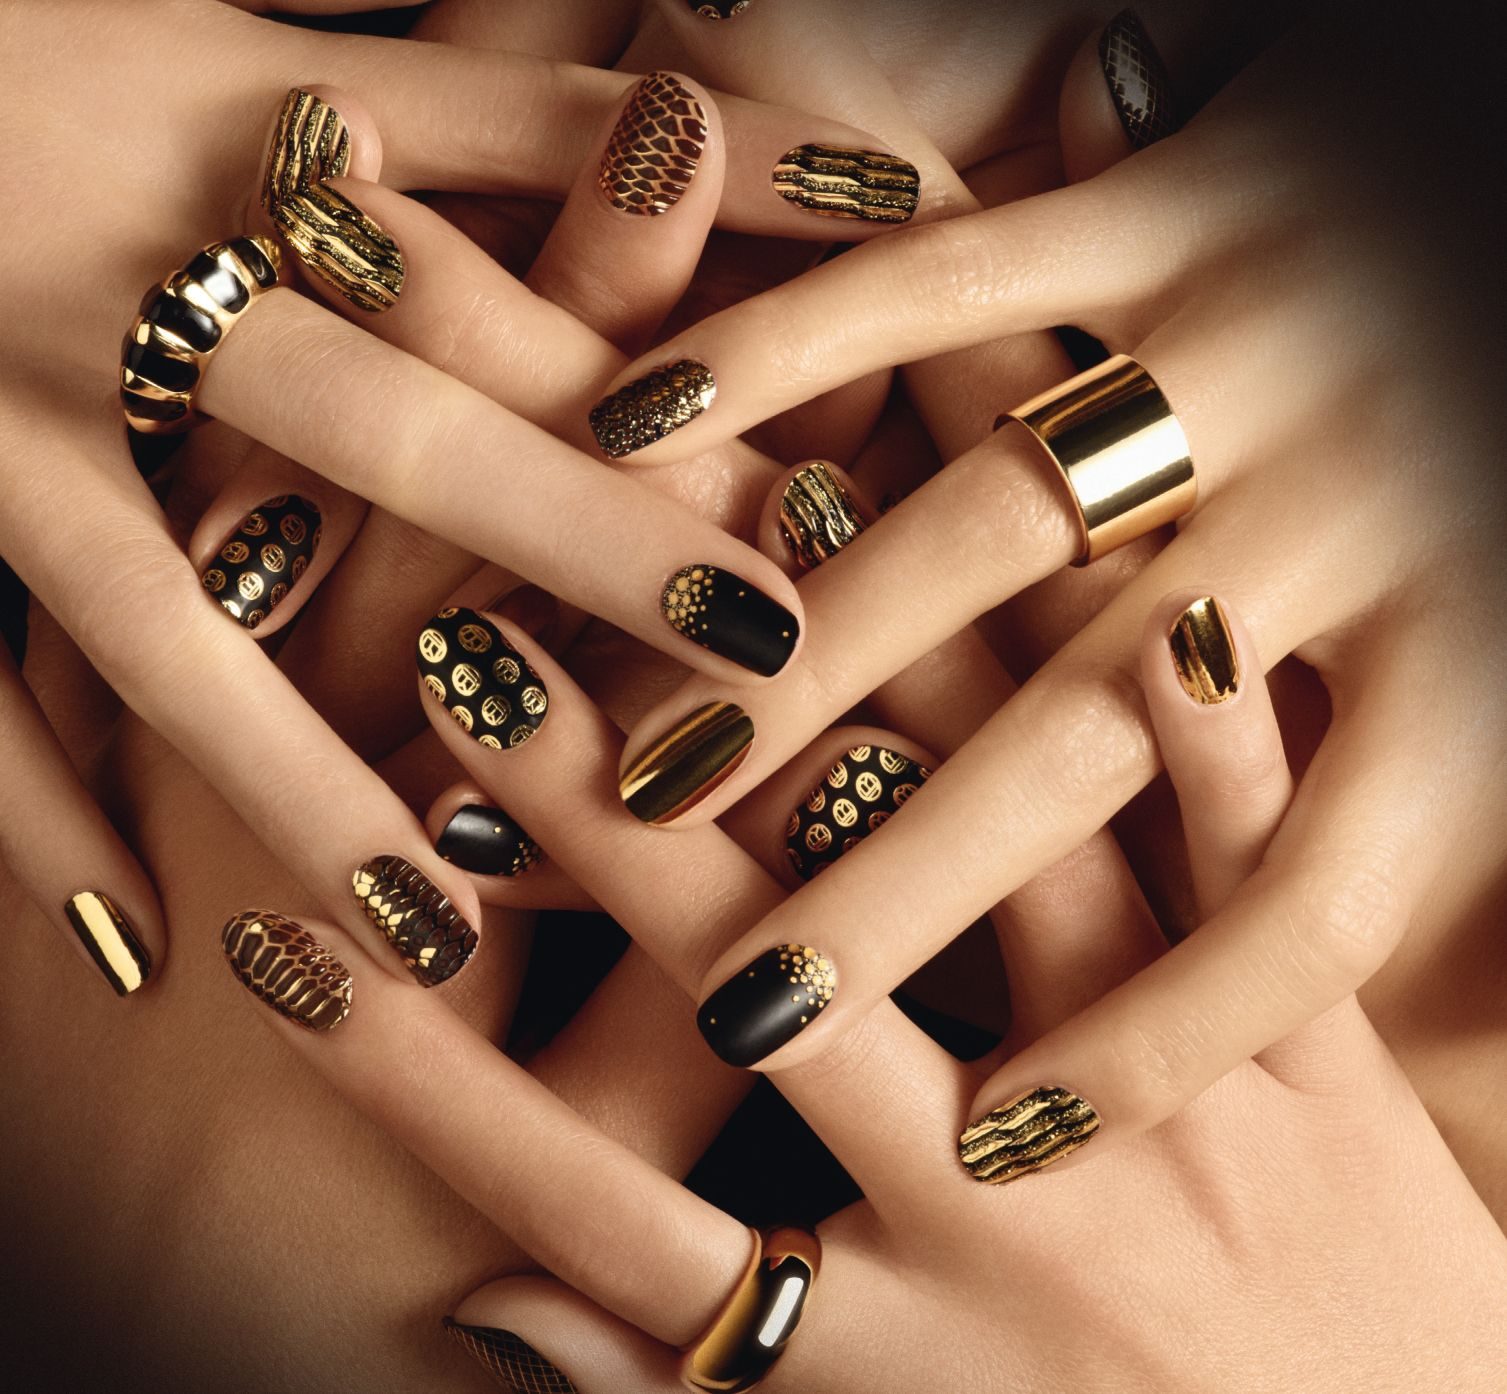 Sleek, metallic nails are all at once wonderfully chic and incredibly daring. #drippedingold #goldnails